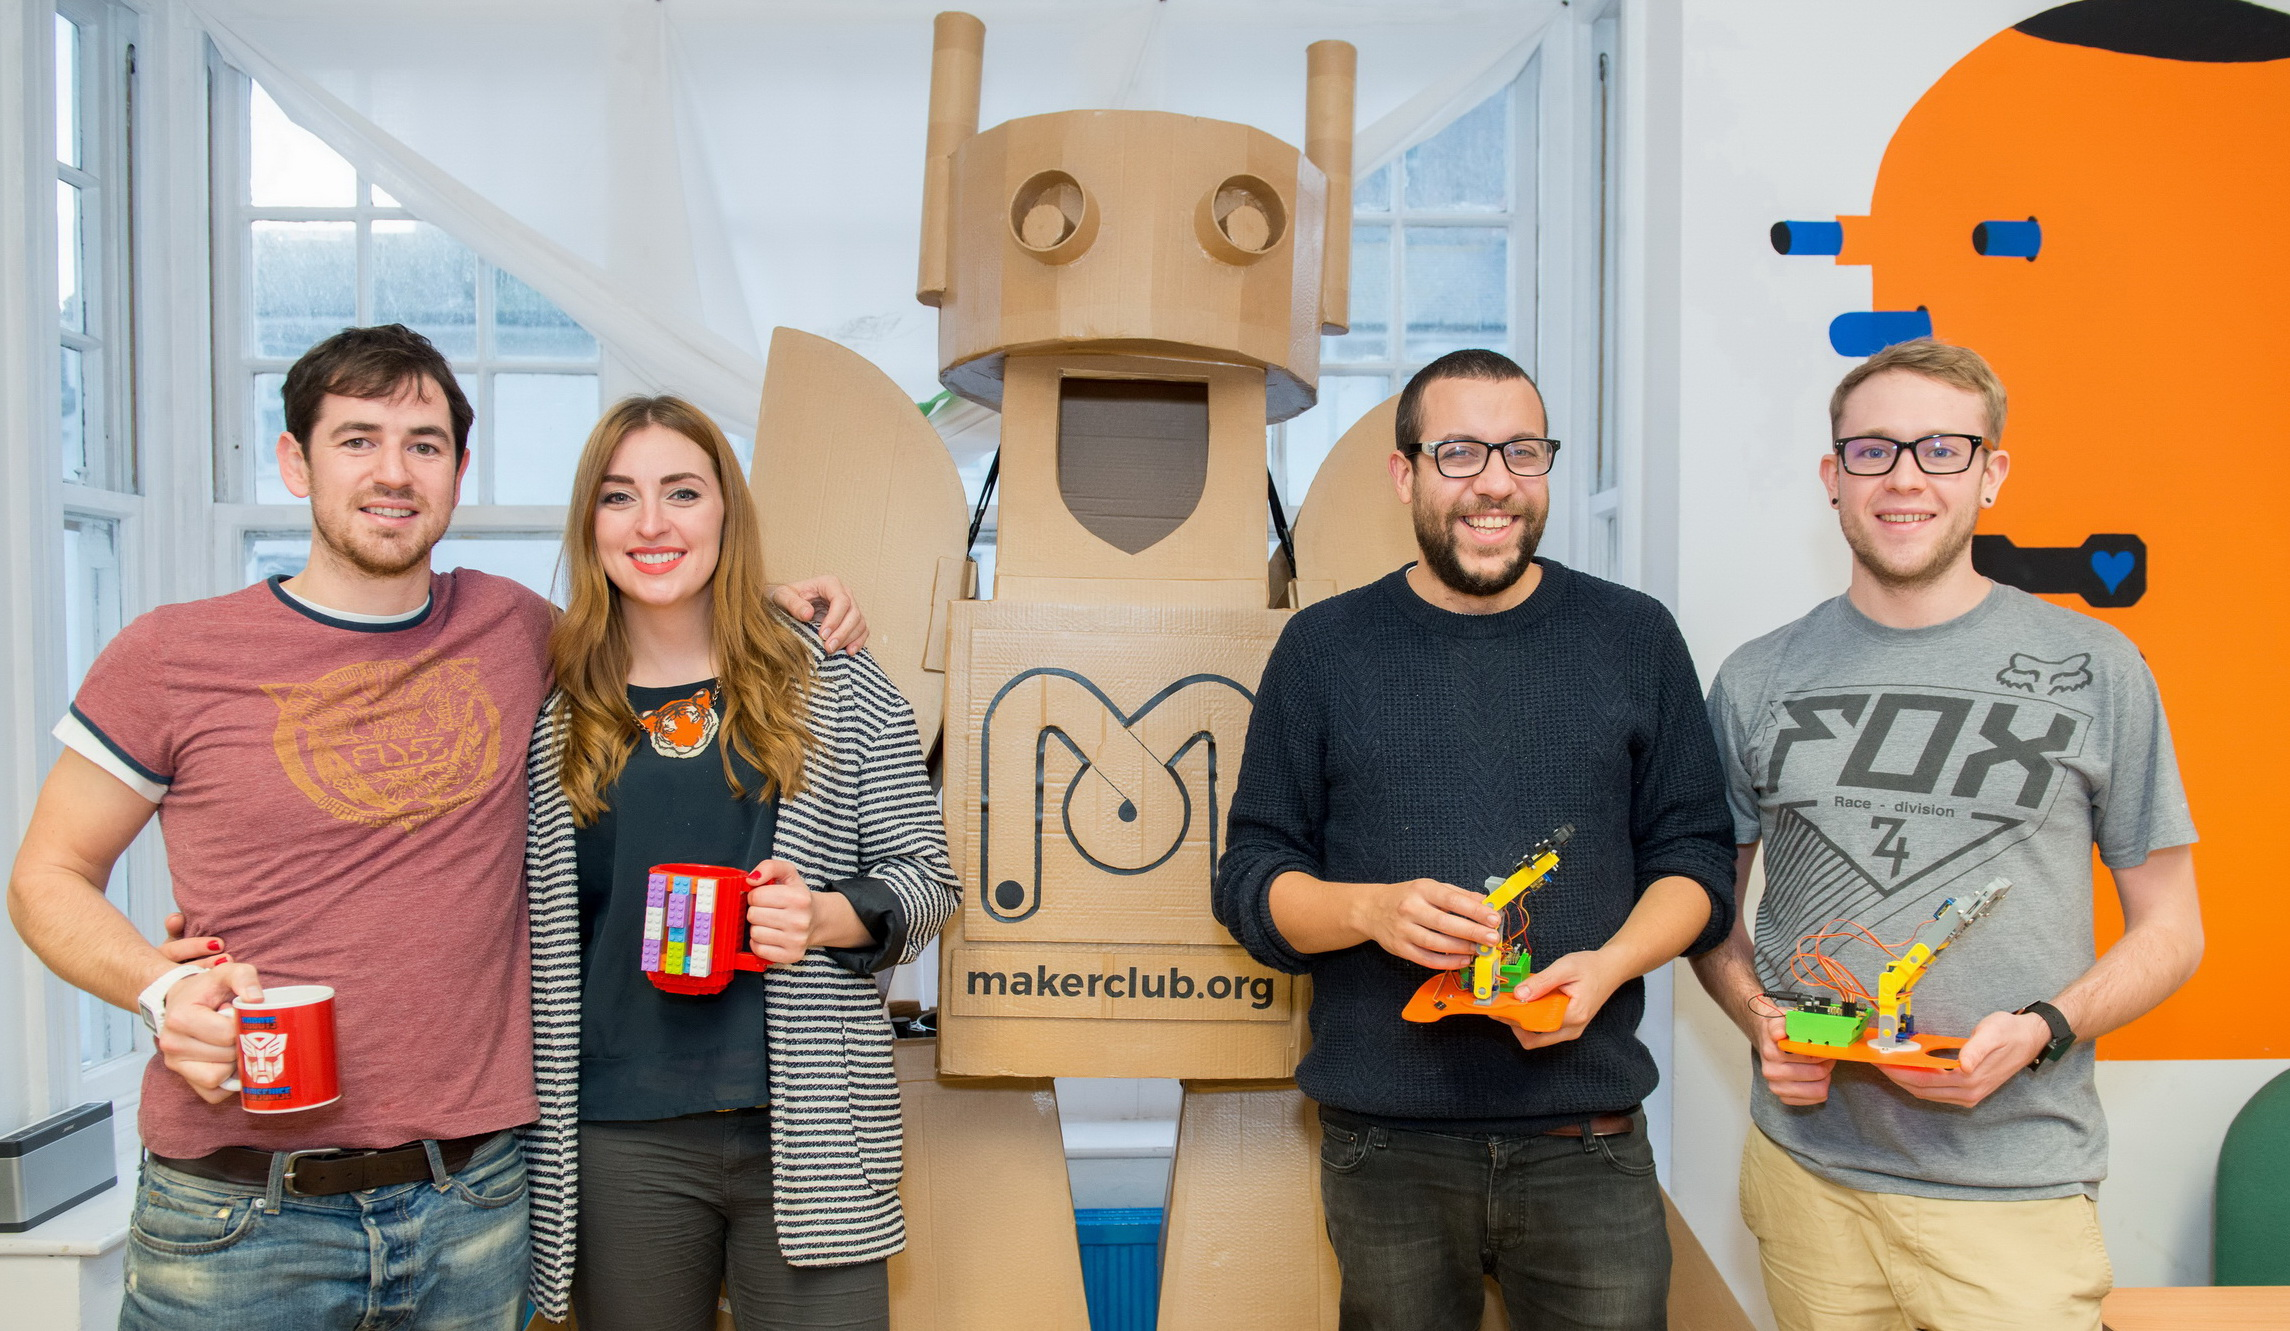 """MakerClub: """"The Creative Economy Is an Integral Part of the UK"""""""